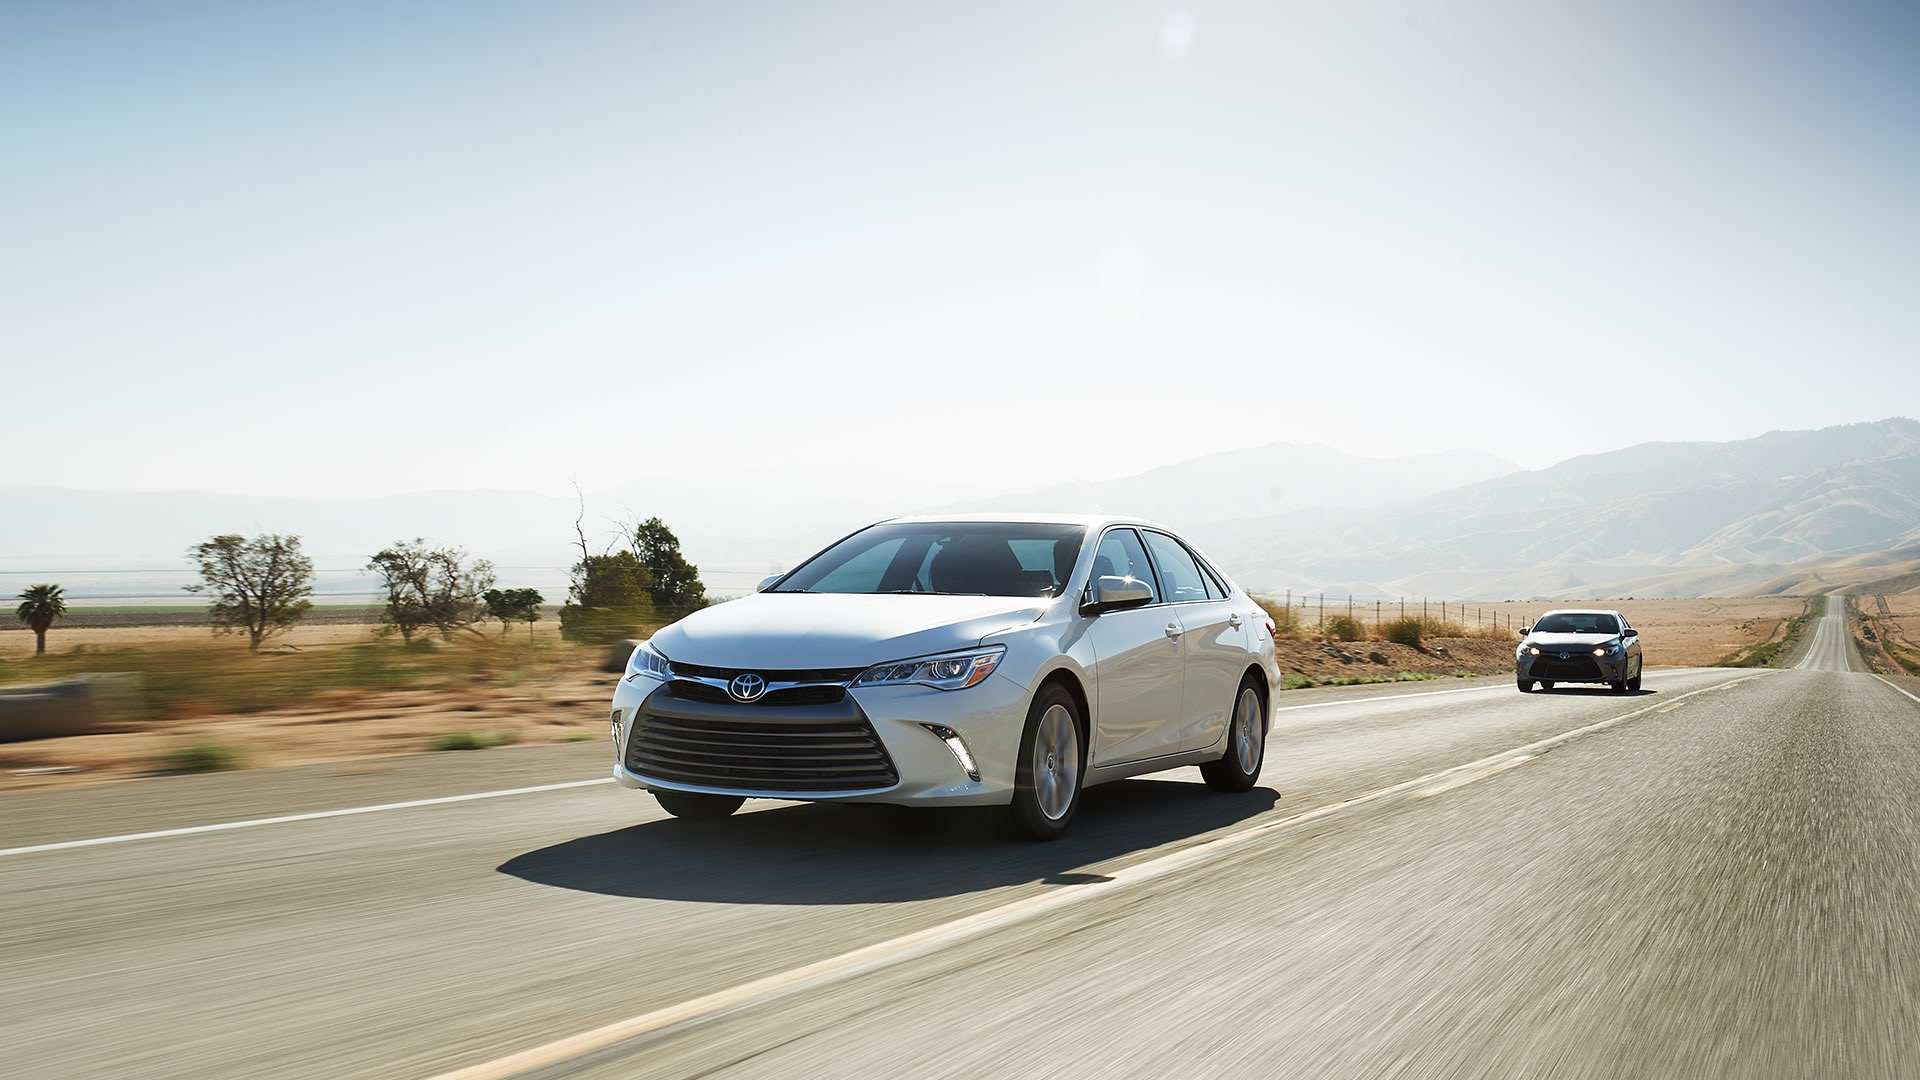 2017 Toyota Camry For Sale In Jefferson City, MO